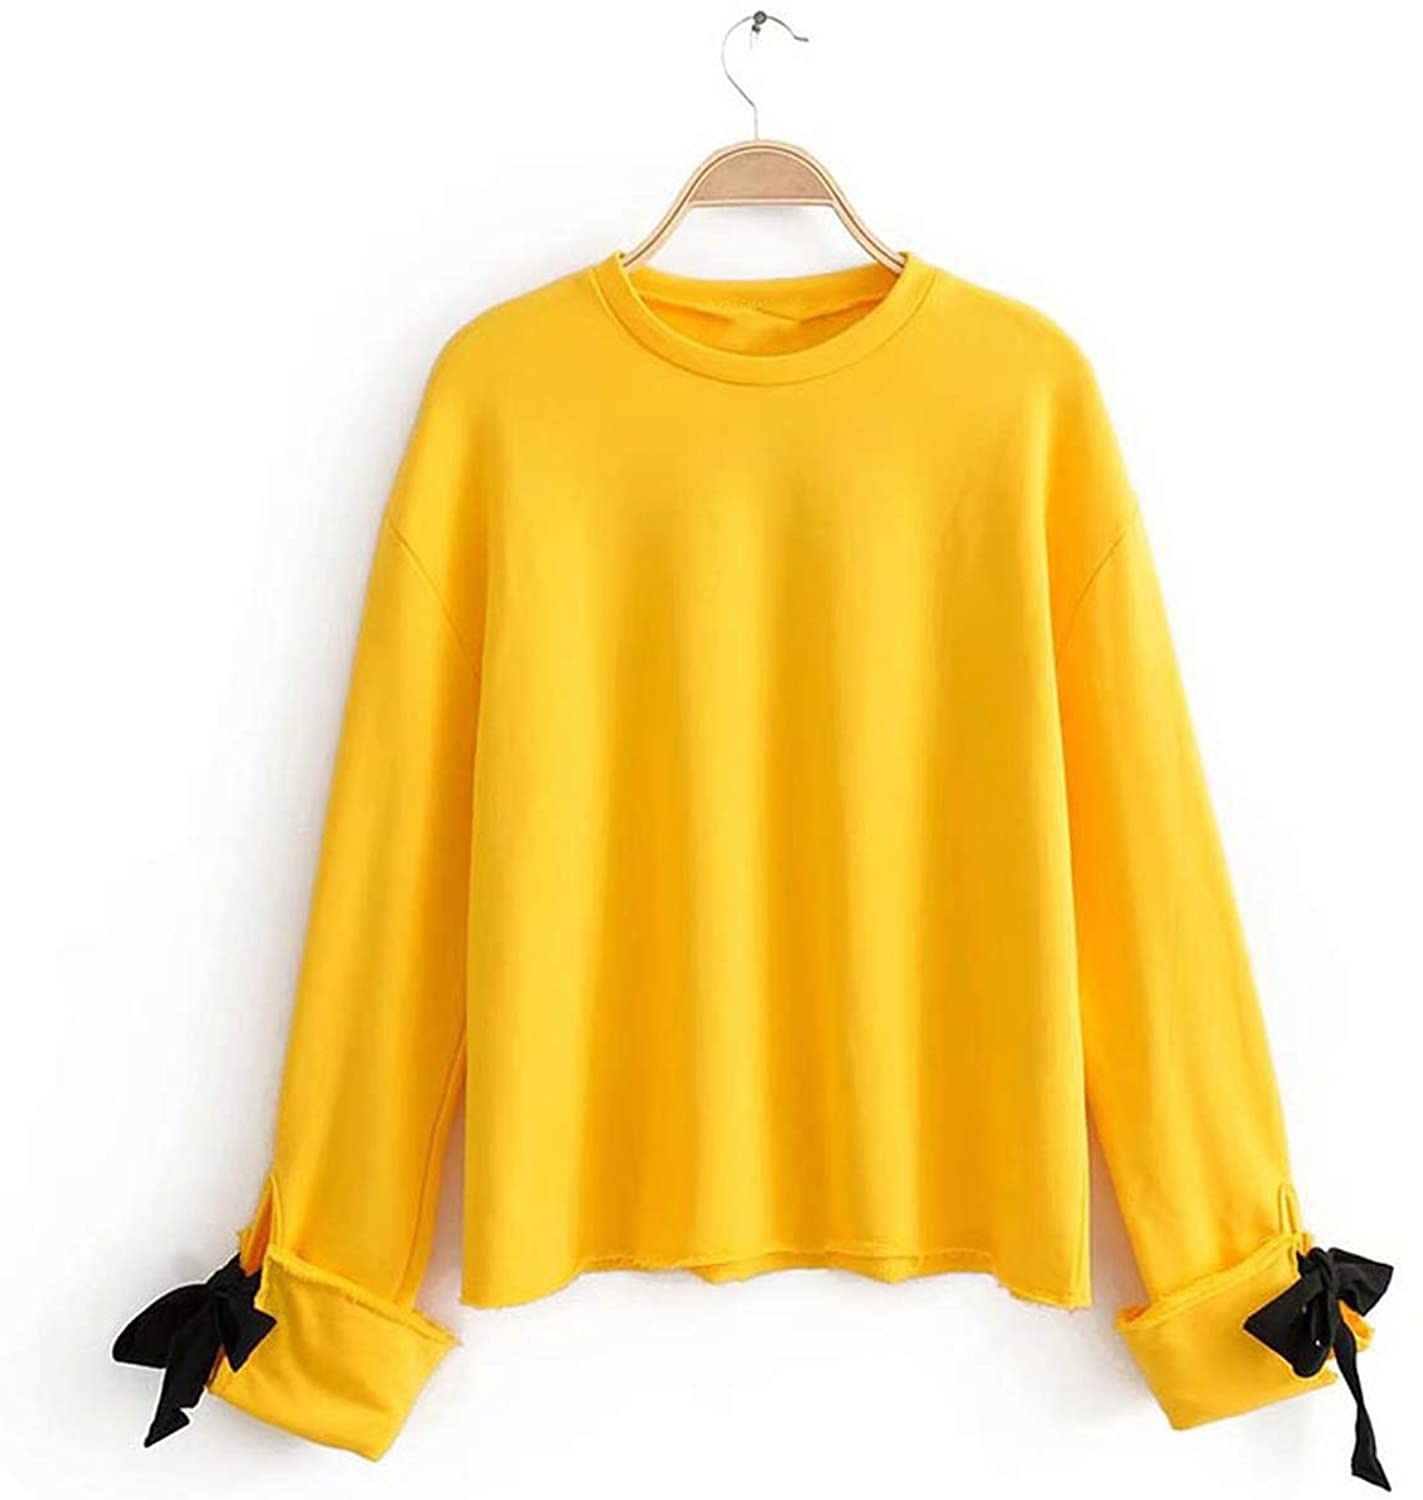 Hoodie Women Blouse New Yellow Pink Color Sleeve Cuff Bow Knot Deco Pullovers Sweatshirt Tops